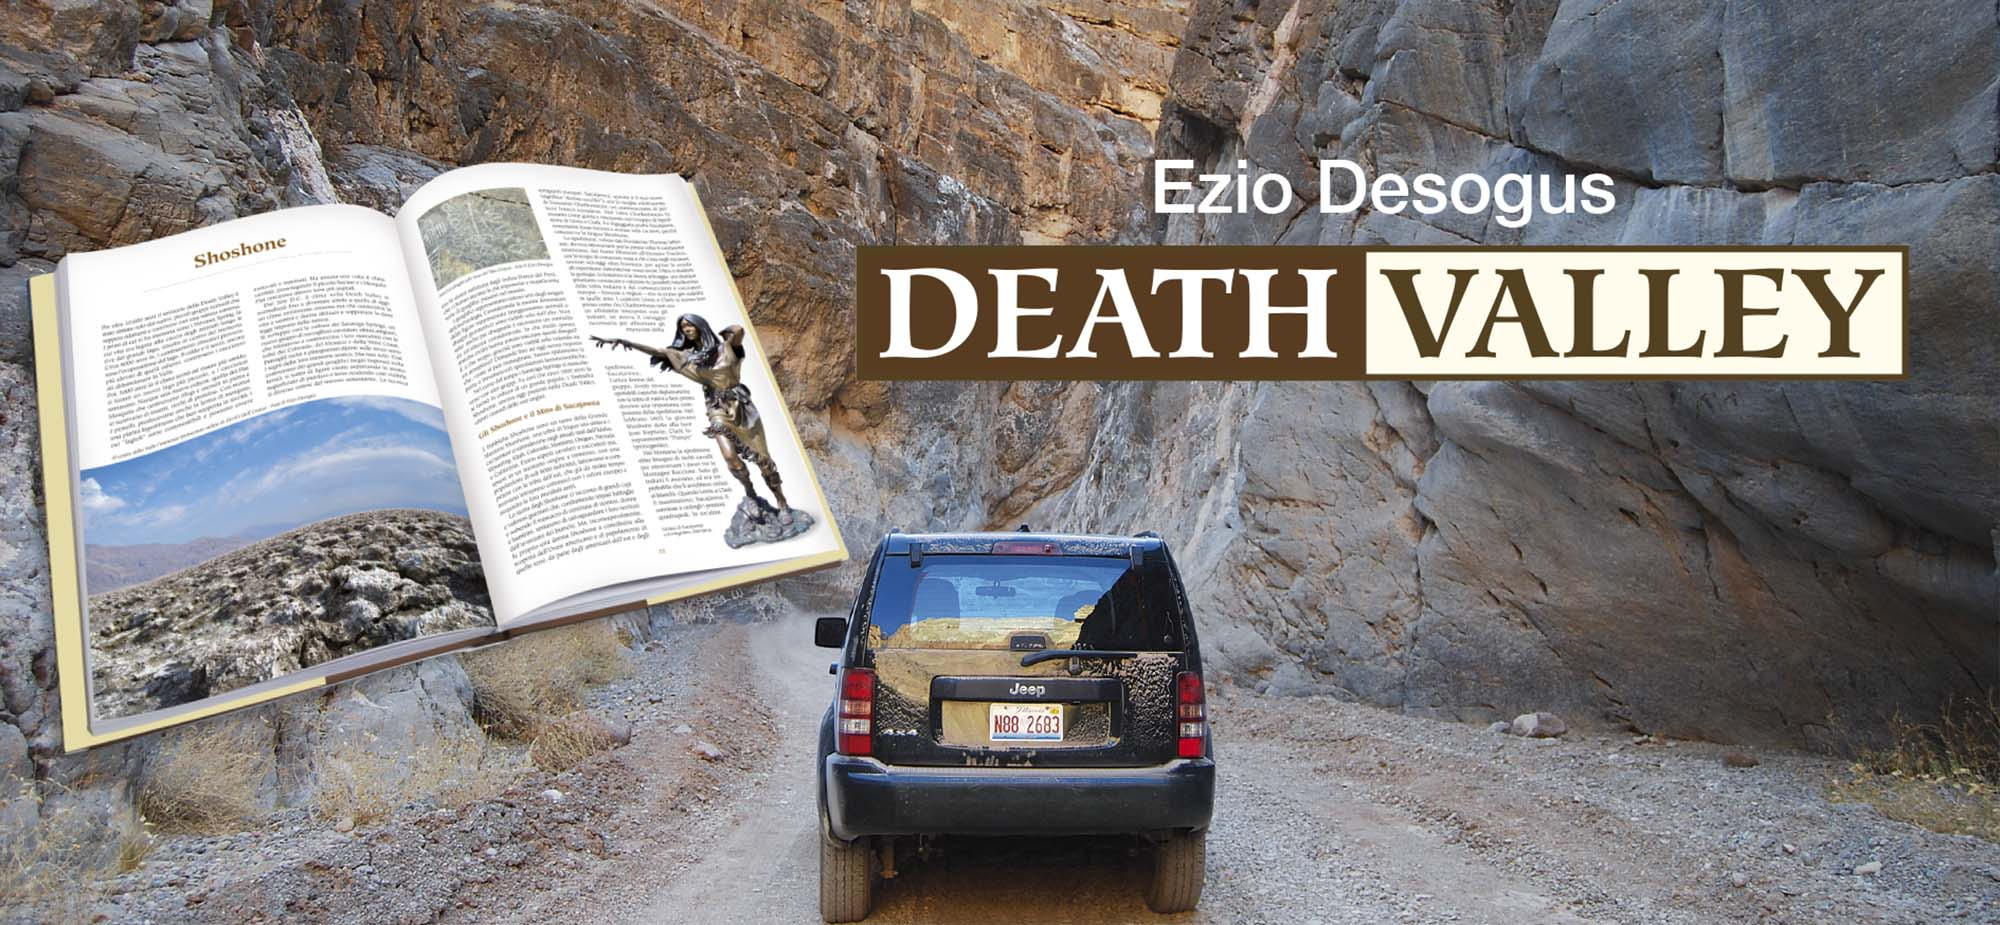 death valley libro valle della morte titus canyon offroad